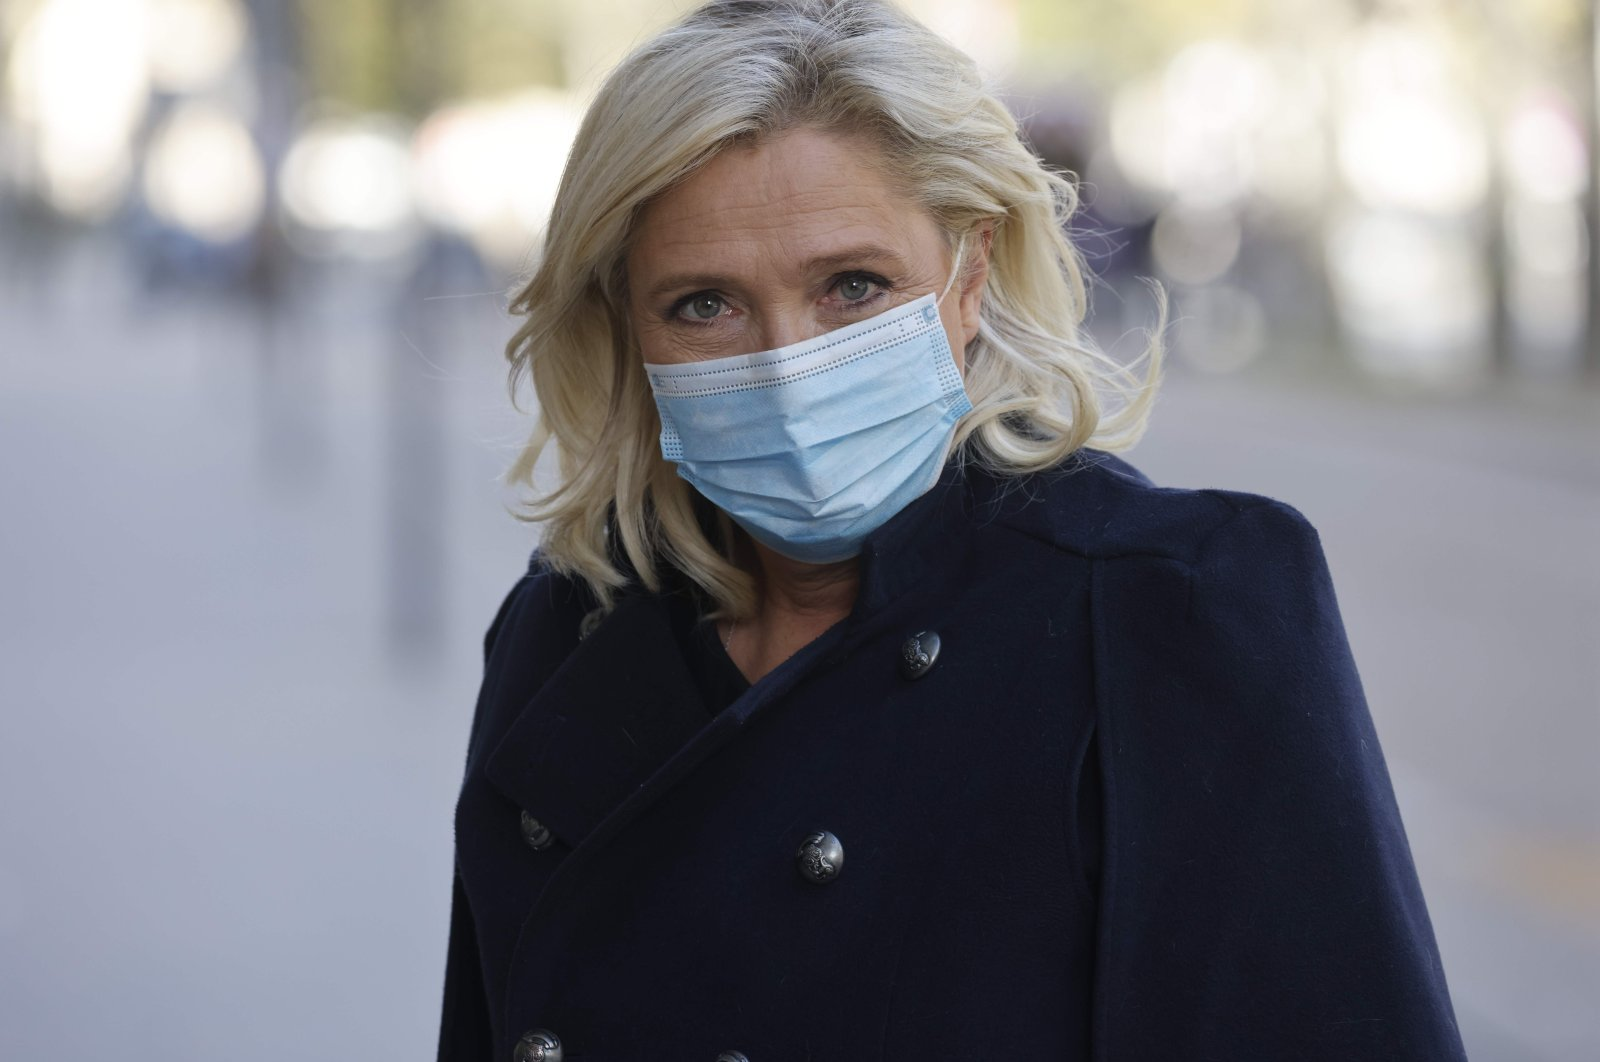 Head of far-right party Rassemblement National (RN) Marine Le Pen arrives for a meeting in Paris, Oct. 21, 2021. (AFP Photo)